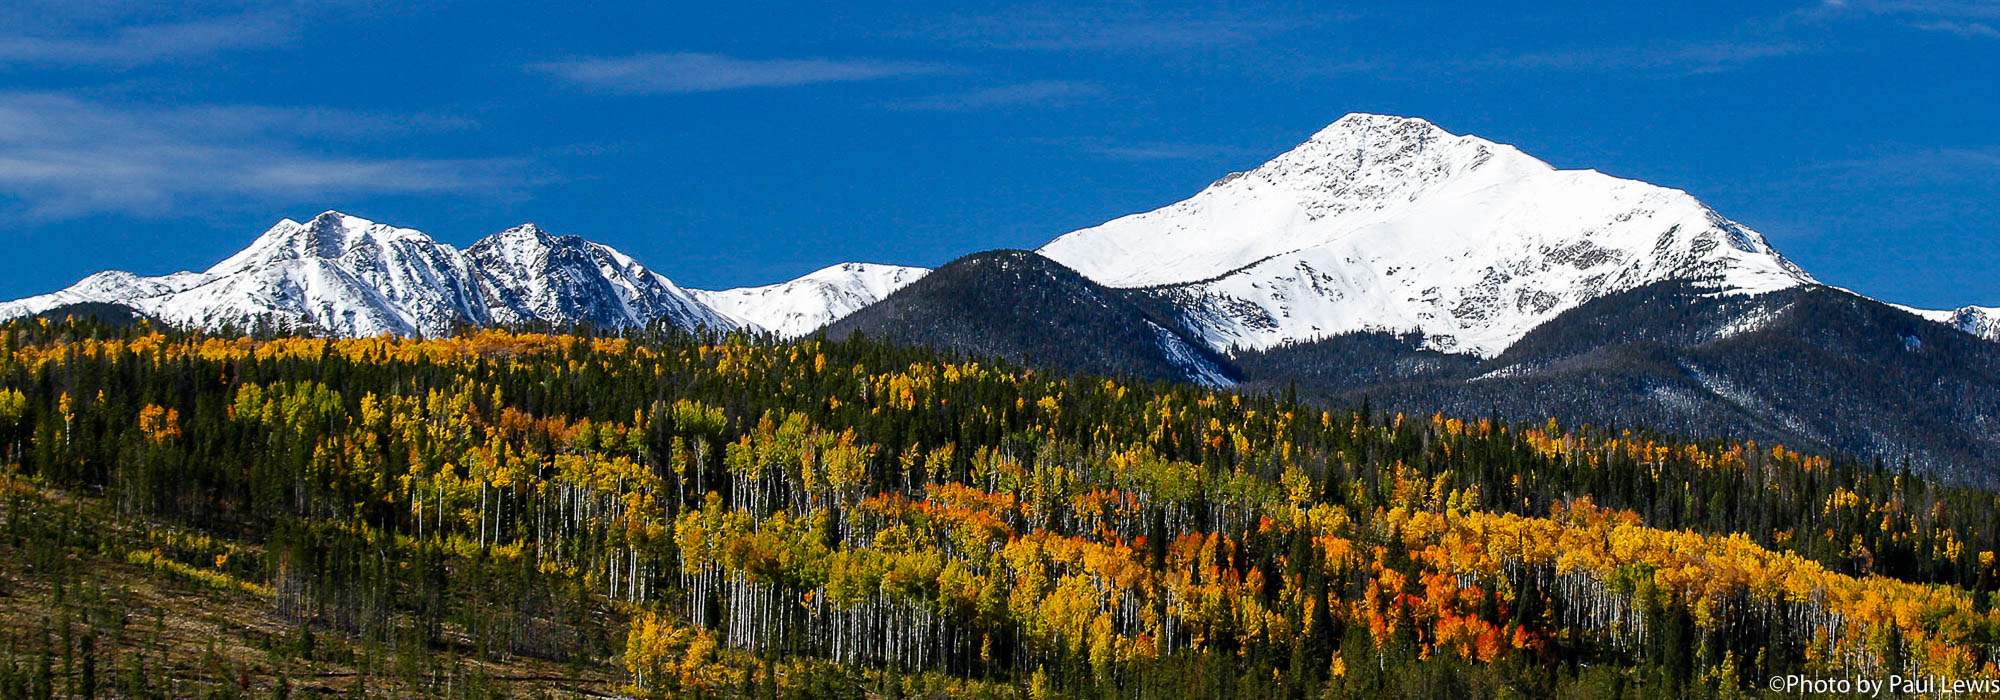 Byers Peak in Fall